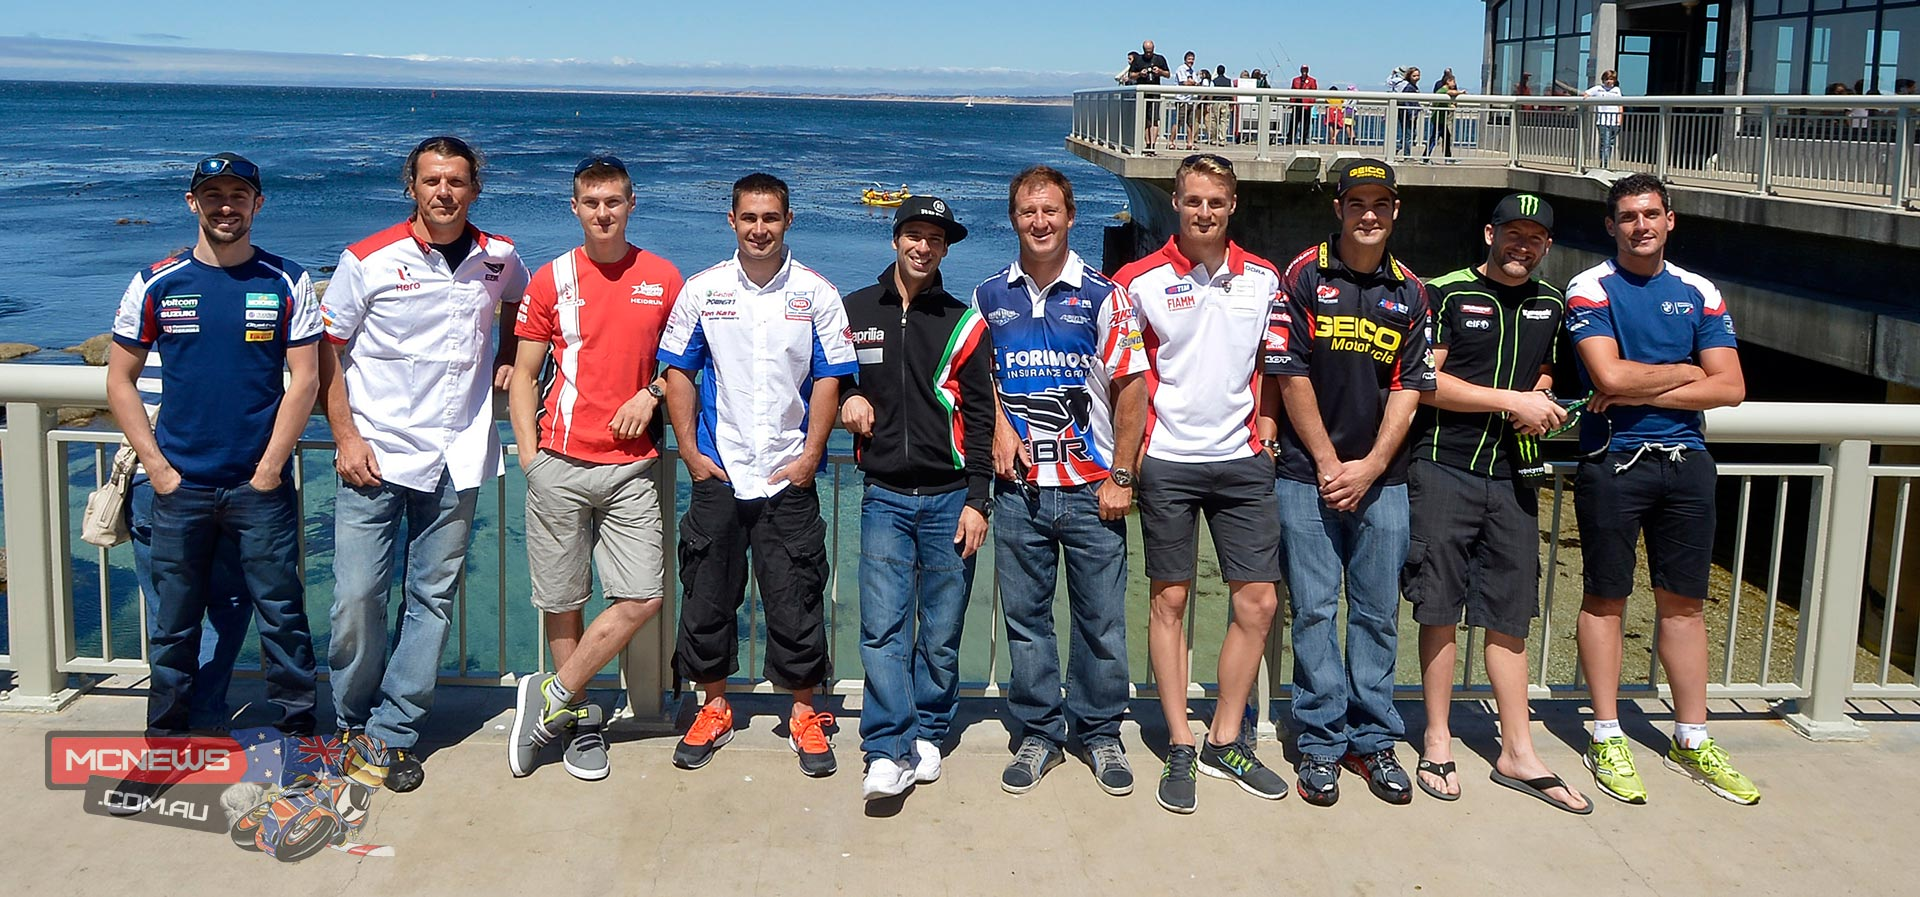 Tom Sykes (Kawasaki Racing Team), Marco Melandri (Aprilia Racing Team), Chaz Davies (Ducati Superbike Team), Eugene Laverty (Voltcom Crescent Suzuki), Leon Haslam (Pata Honda World Superbike), Sylvain Barrier (BMW Motorrad Italia Superbike Team – EVO), Aaron Yates (Team Hero EBR) and Christian Iddon (Team Bimota Alstare - EVO) were joined by wildcard riders Larry Pegram (Foremost Insurance EBR) and Chris Ulrich (GEICO Motorcycle Road Racing Honda) to spend a couple of hours at the Monterey Aquarium. They were treated to a guided tour of the aquarium and one of the largest open sea exhibits in the world. The exhibit holds 1 million gallons of water and houses a variety of creatures including sharks, tuna and turtles to name but a few. On their return to the Laguna Seca circuit the riders involved in today's media event were able to join their rivals for the customary two hour track familiarisation session, which given the fact that the circuit is new for many of the entrants will prove valuable come tomorrow's three Free Practice sessions which are scheduled to commence at 10:30 am local time.